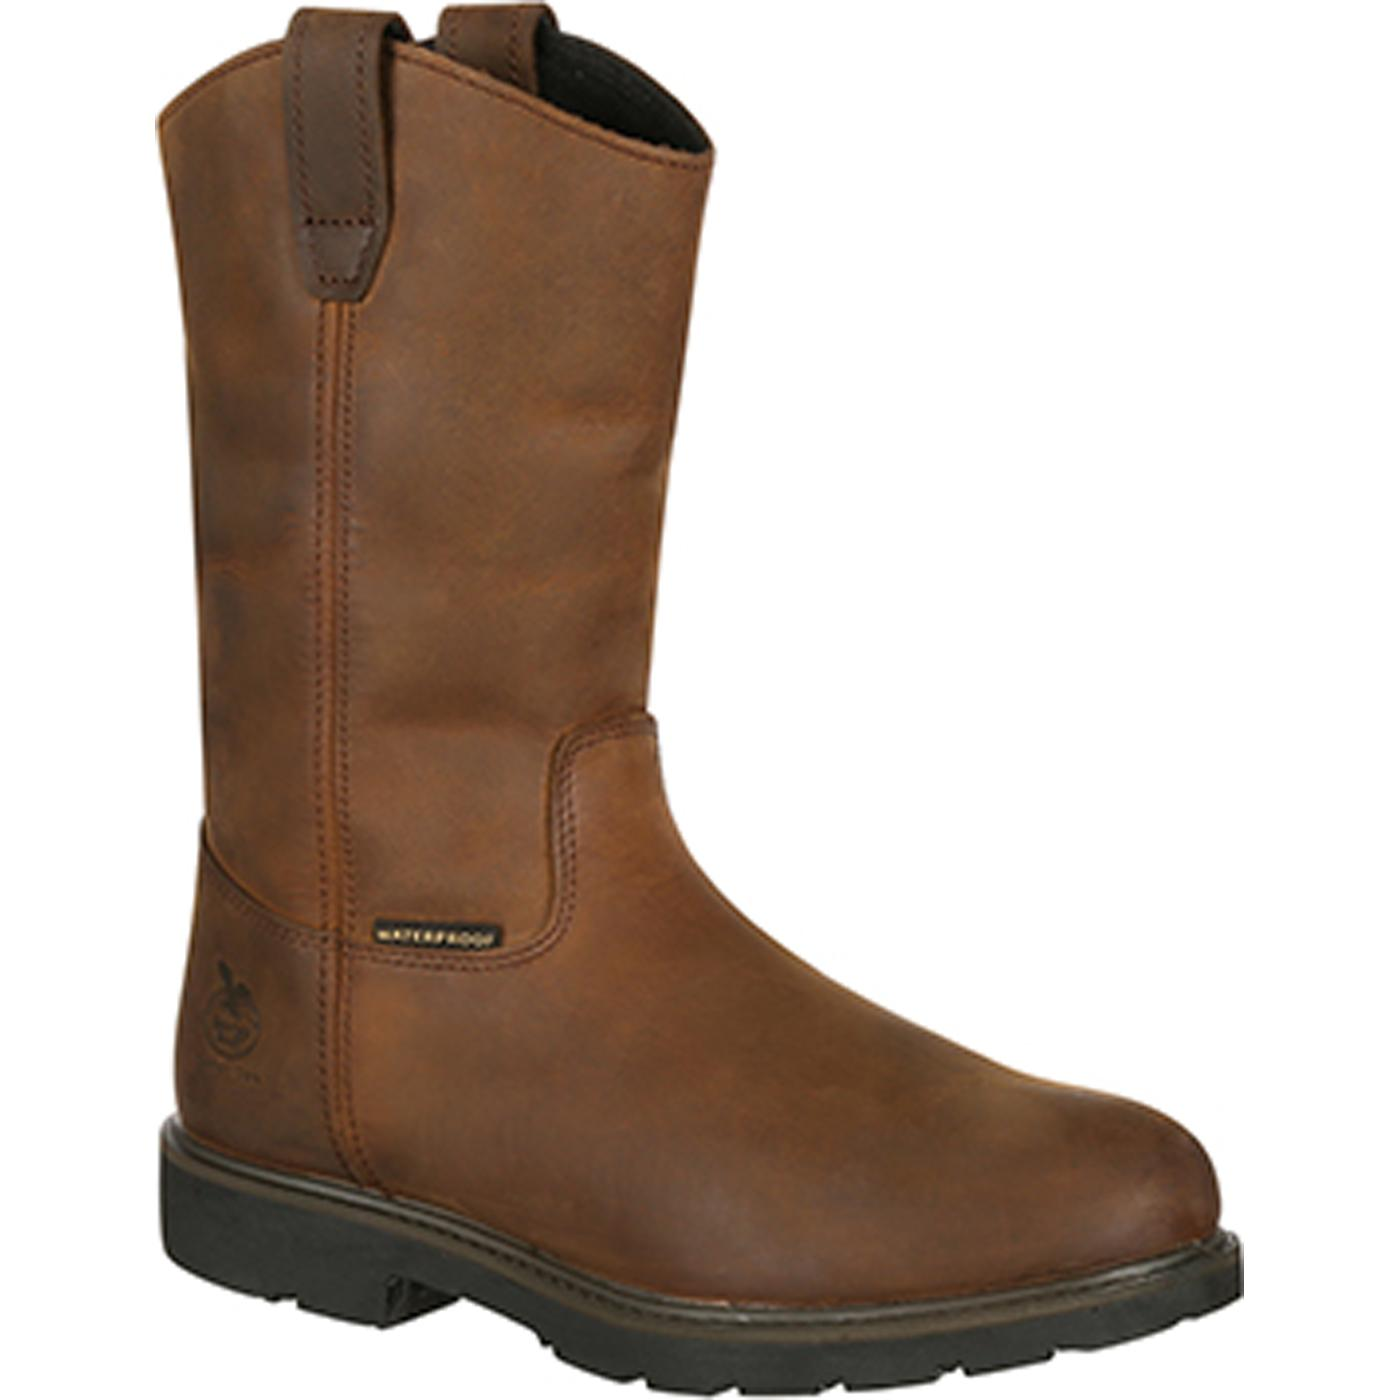 eea33724d7f Georgia Boot Suspension System Steel Toe Waterproof Wellington Work Boot